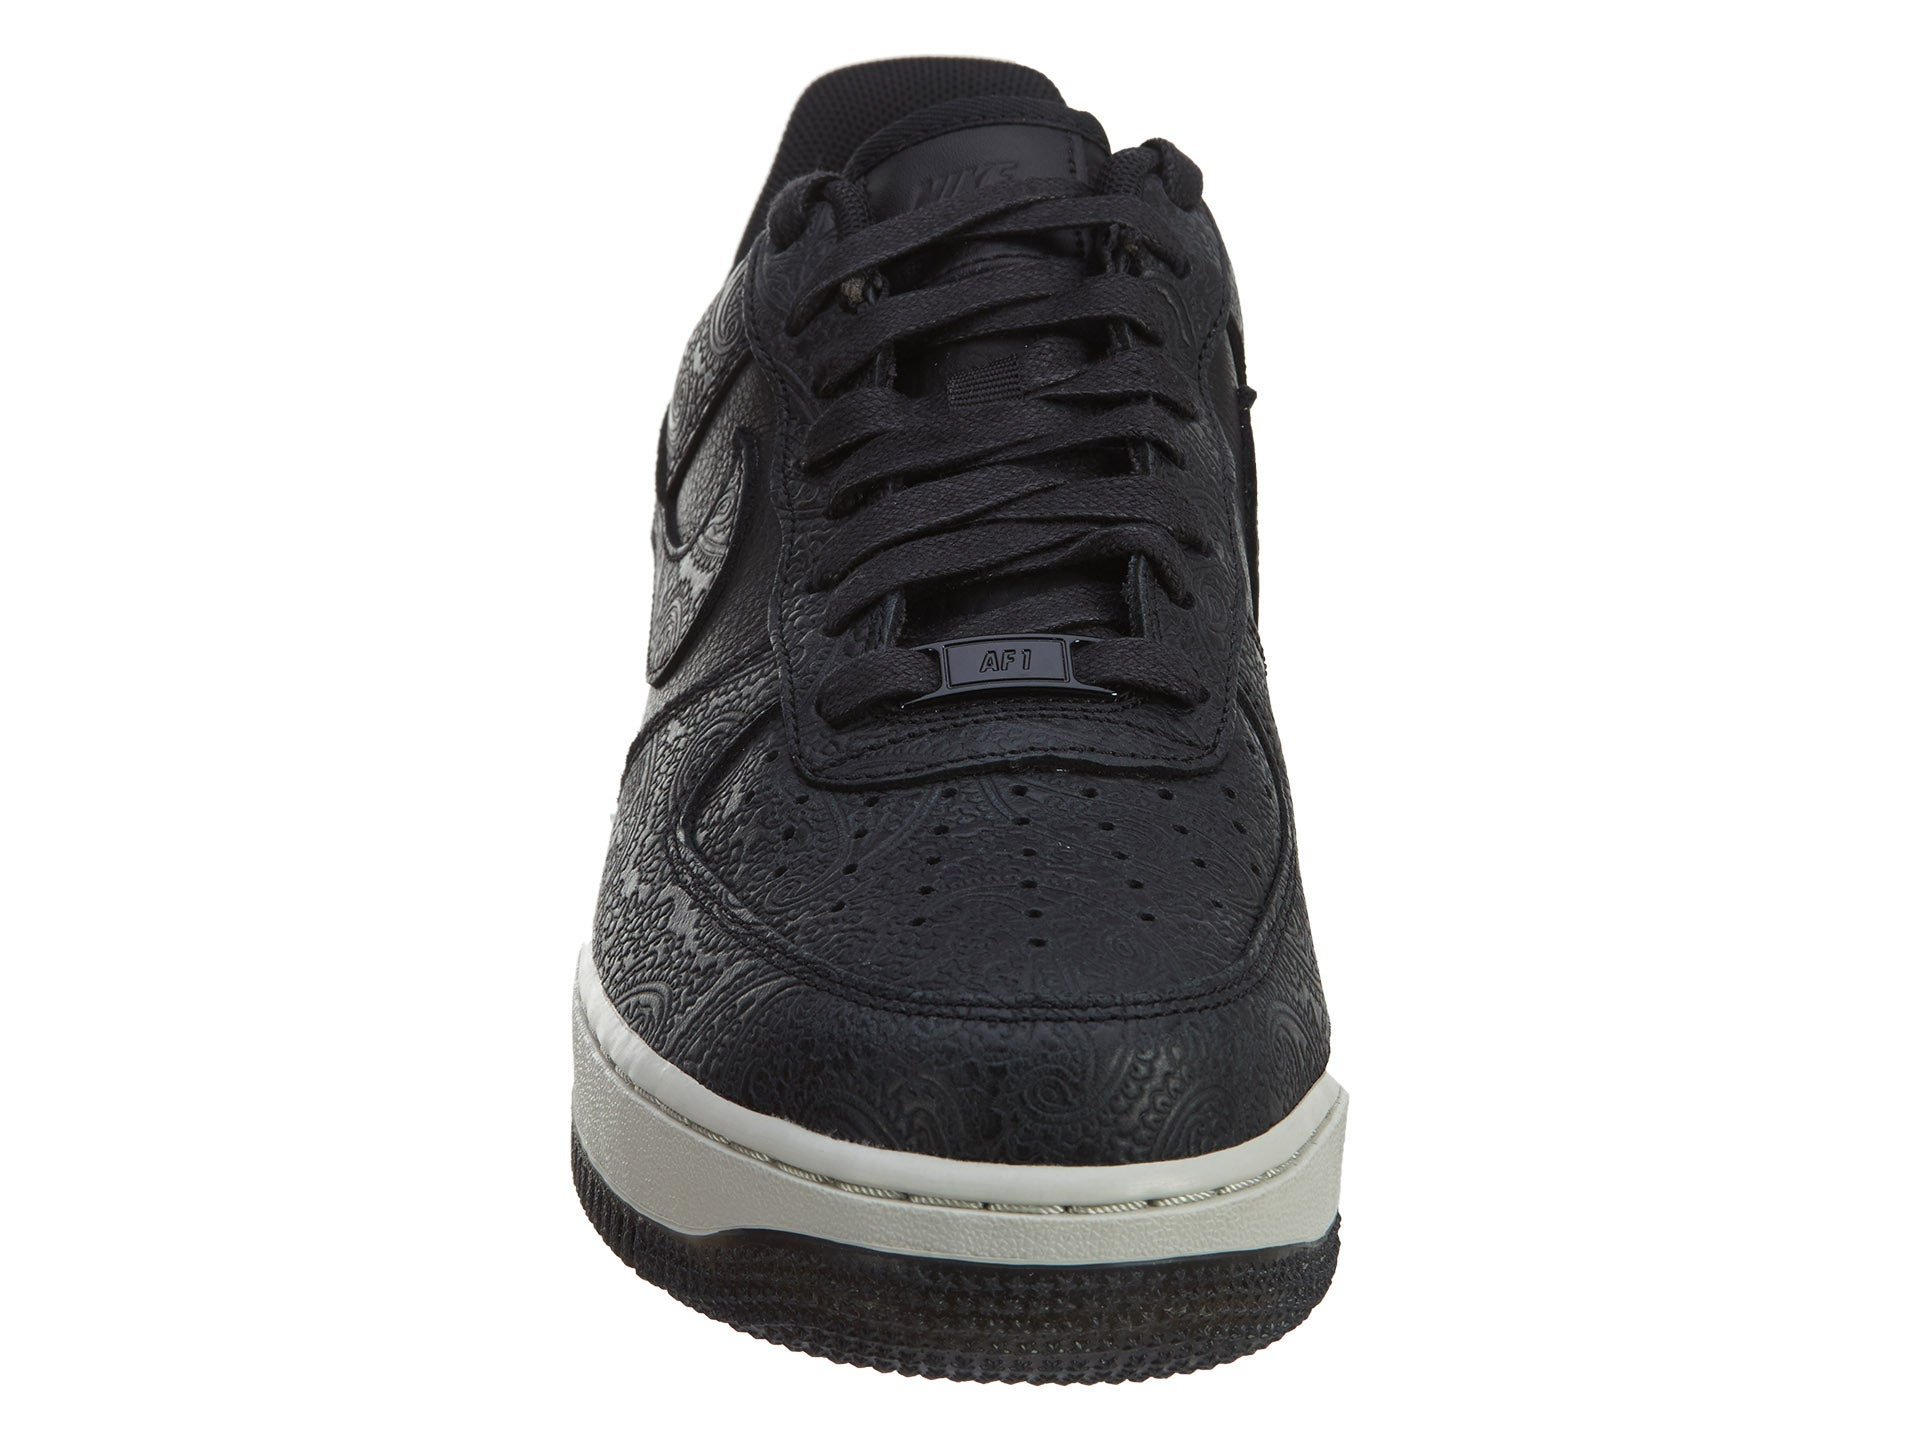 save off a1c51 dc365 Nike Air Force 1 07 Prm Ess Womens Style   860532